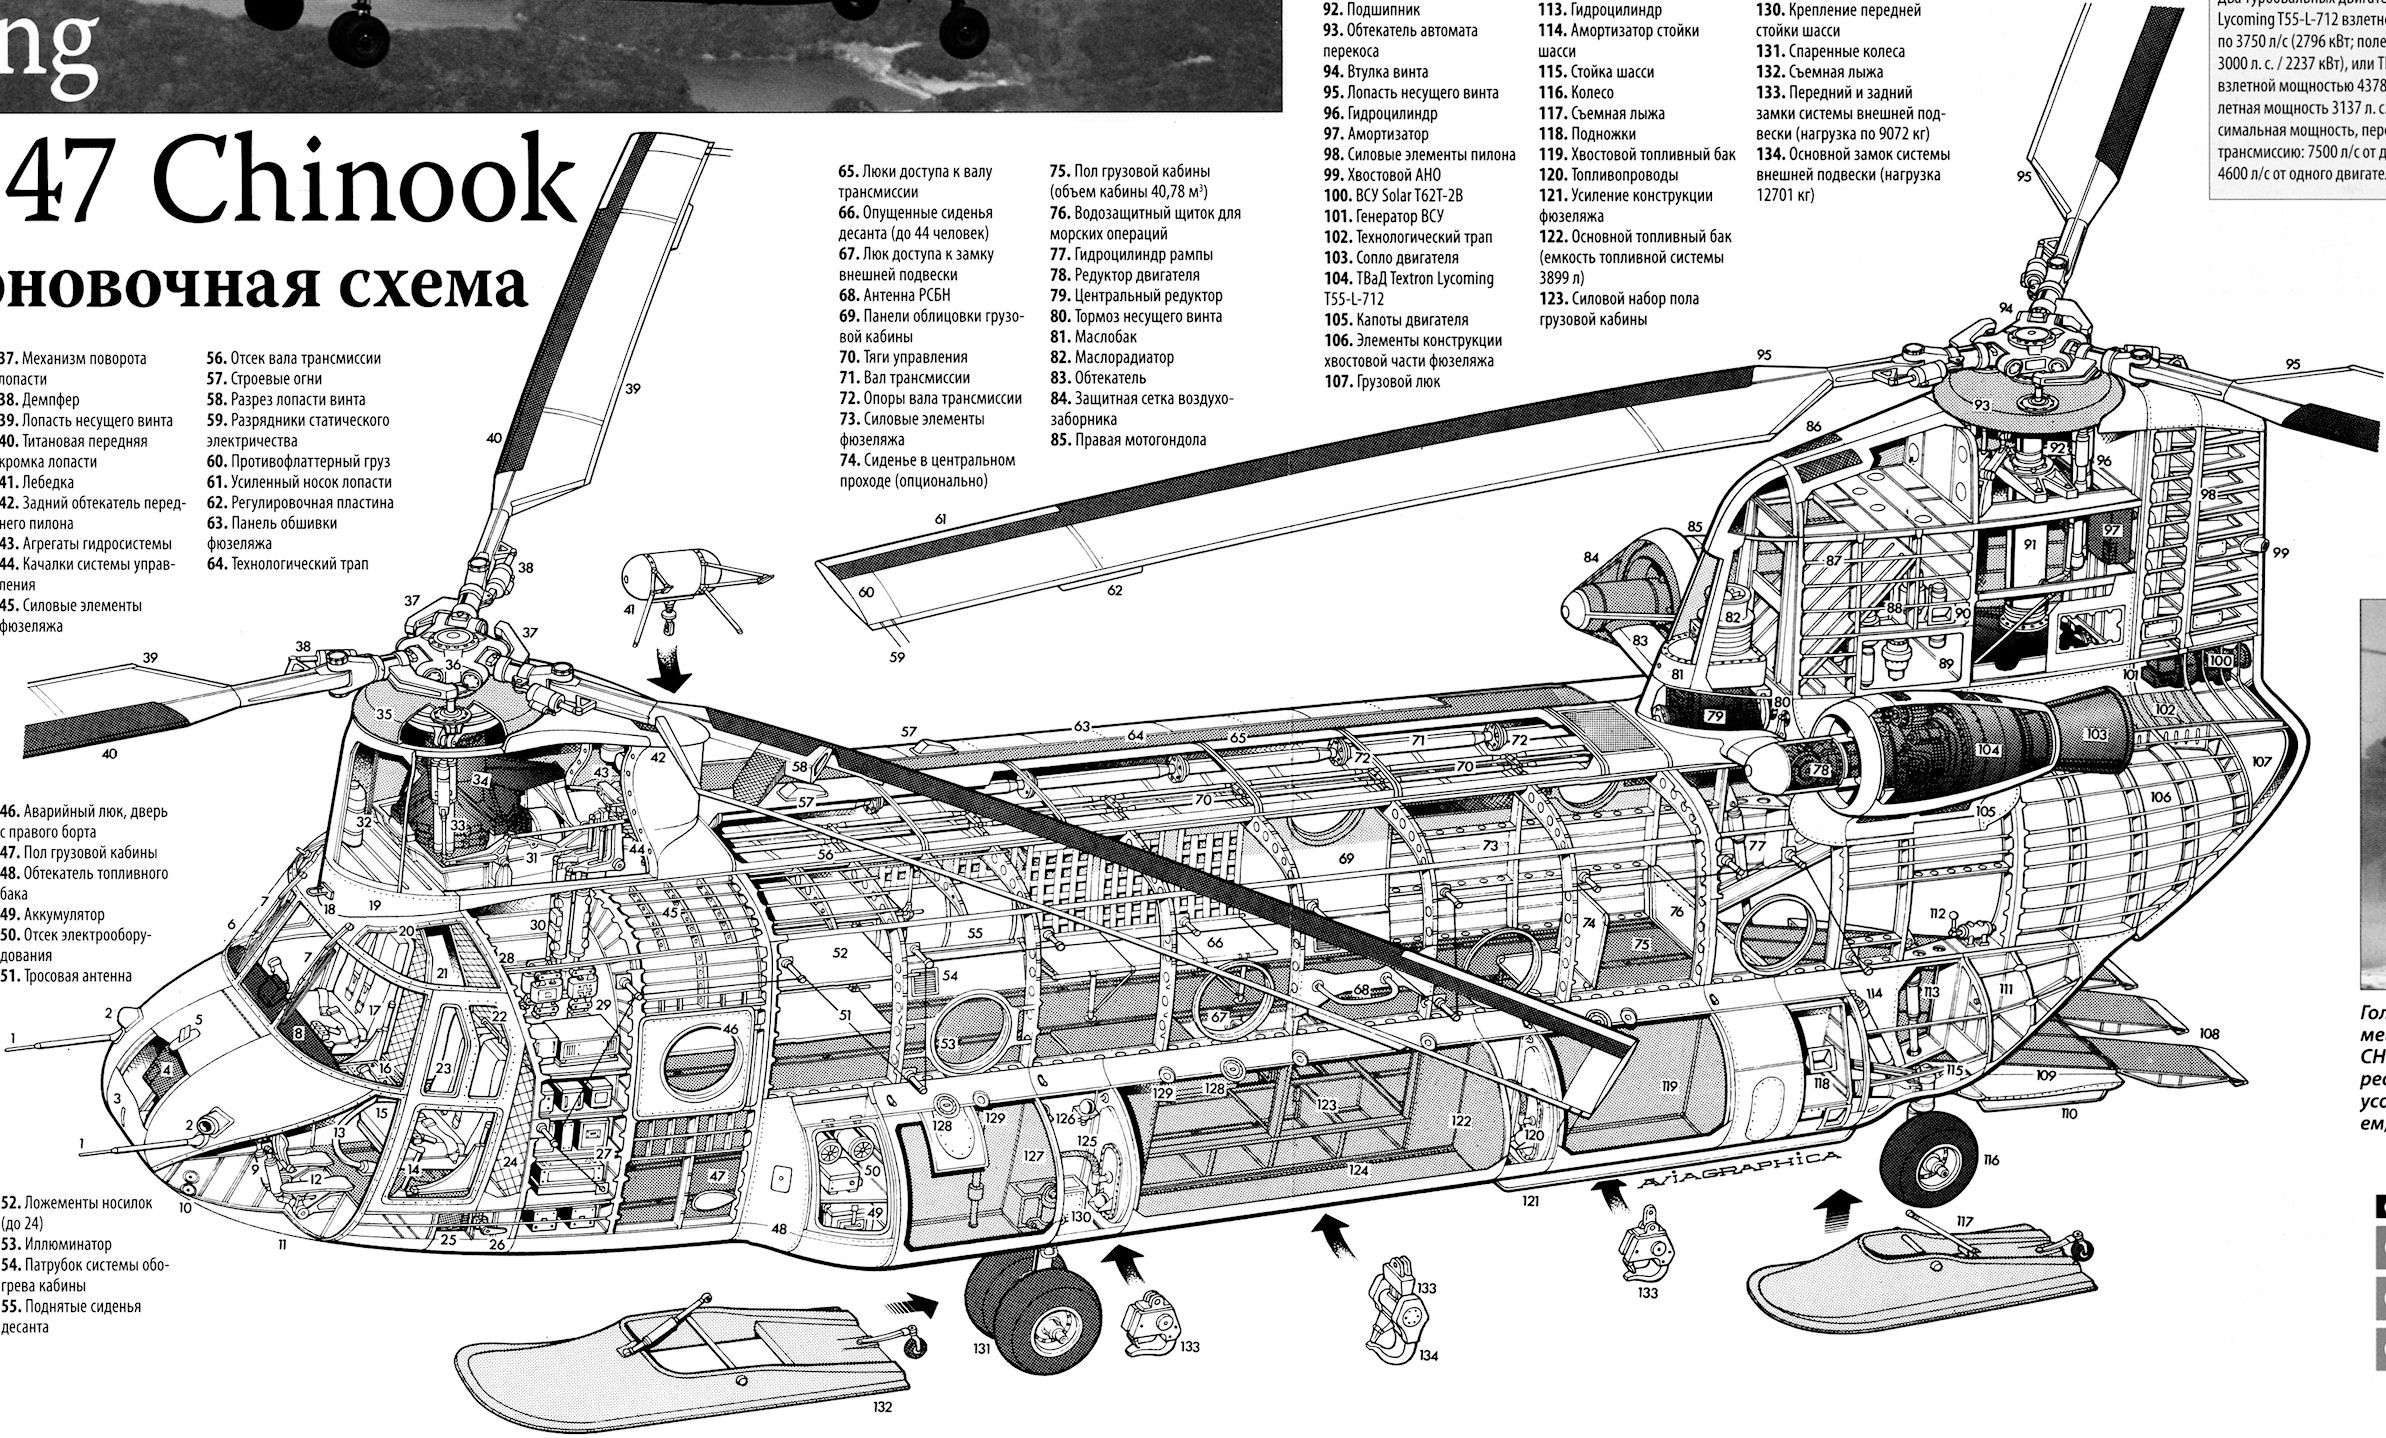 medium resolution of aircarft cutaway boeing ch 47 chinook chinook helicopters attack helicopter military helicopter